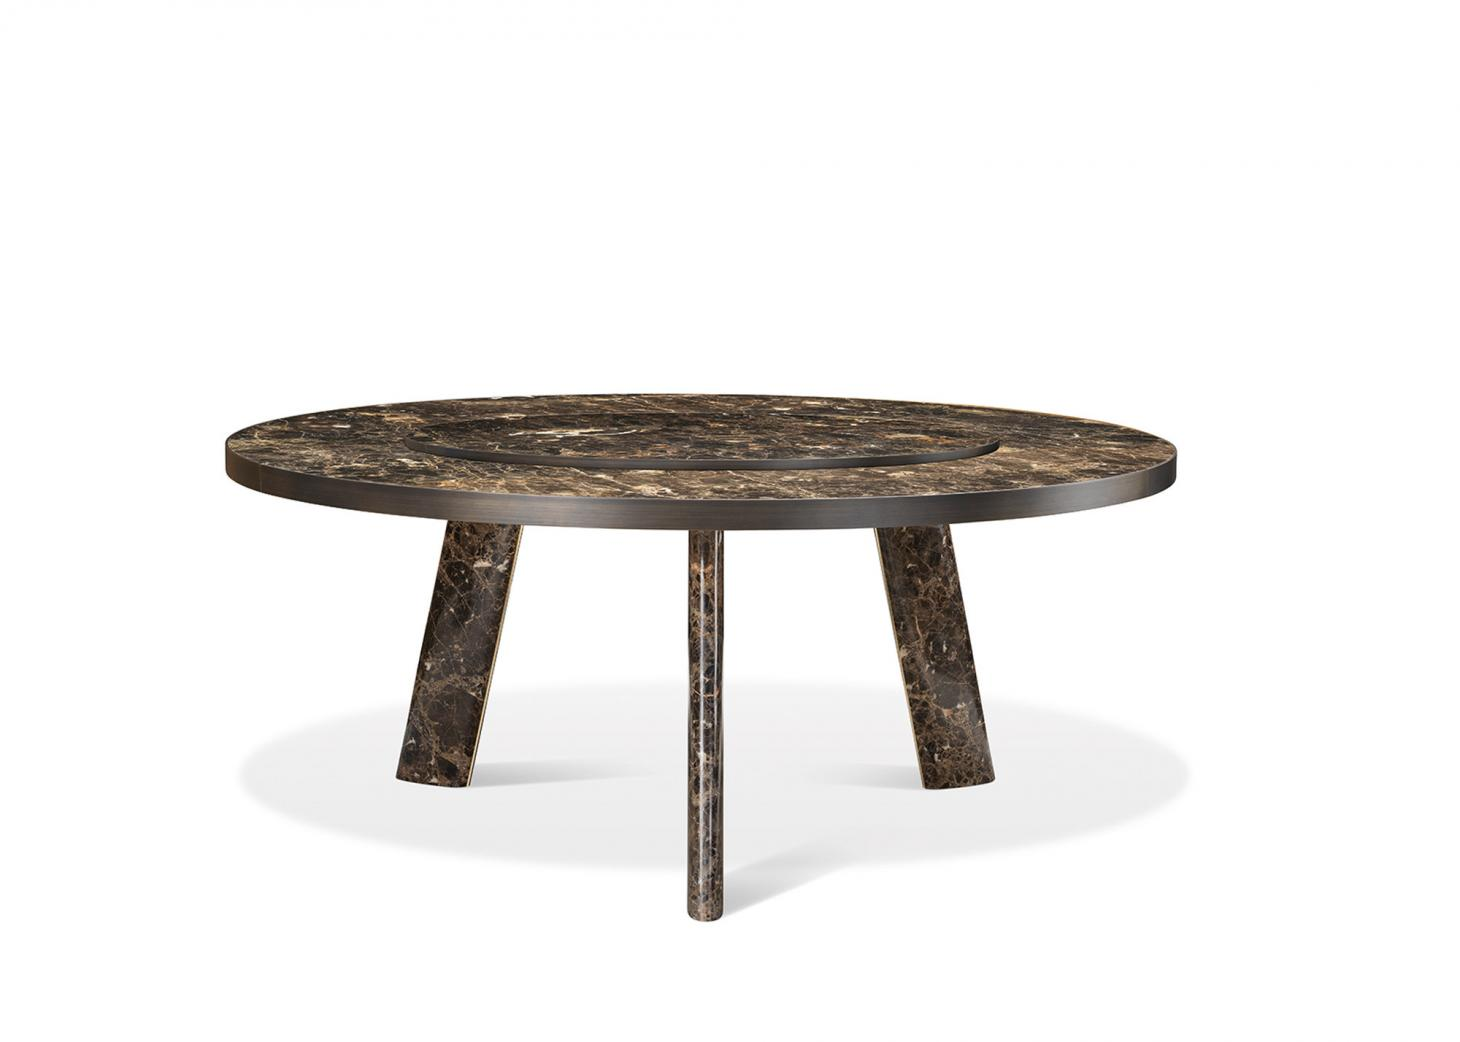 Large dining table in wood with marbled effect